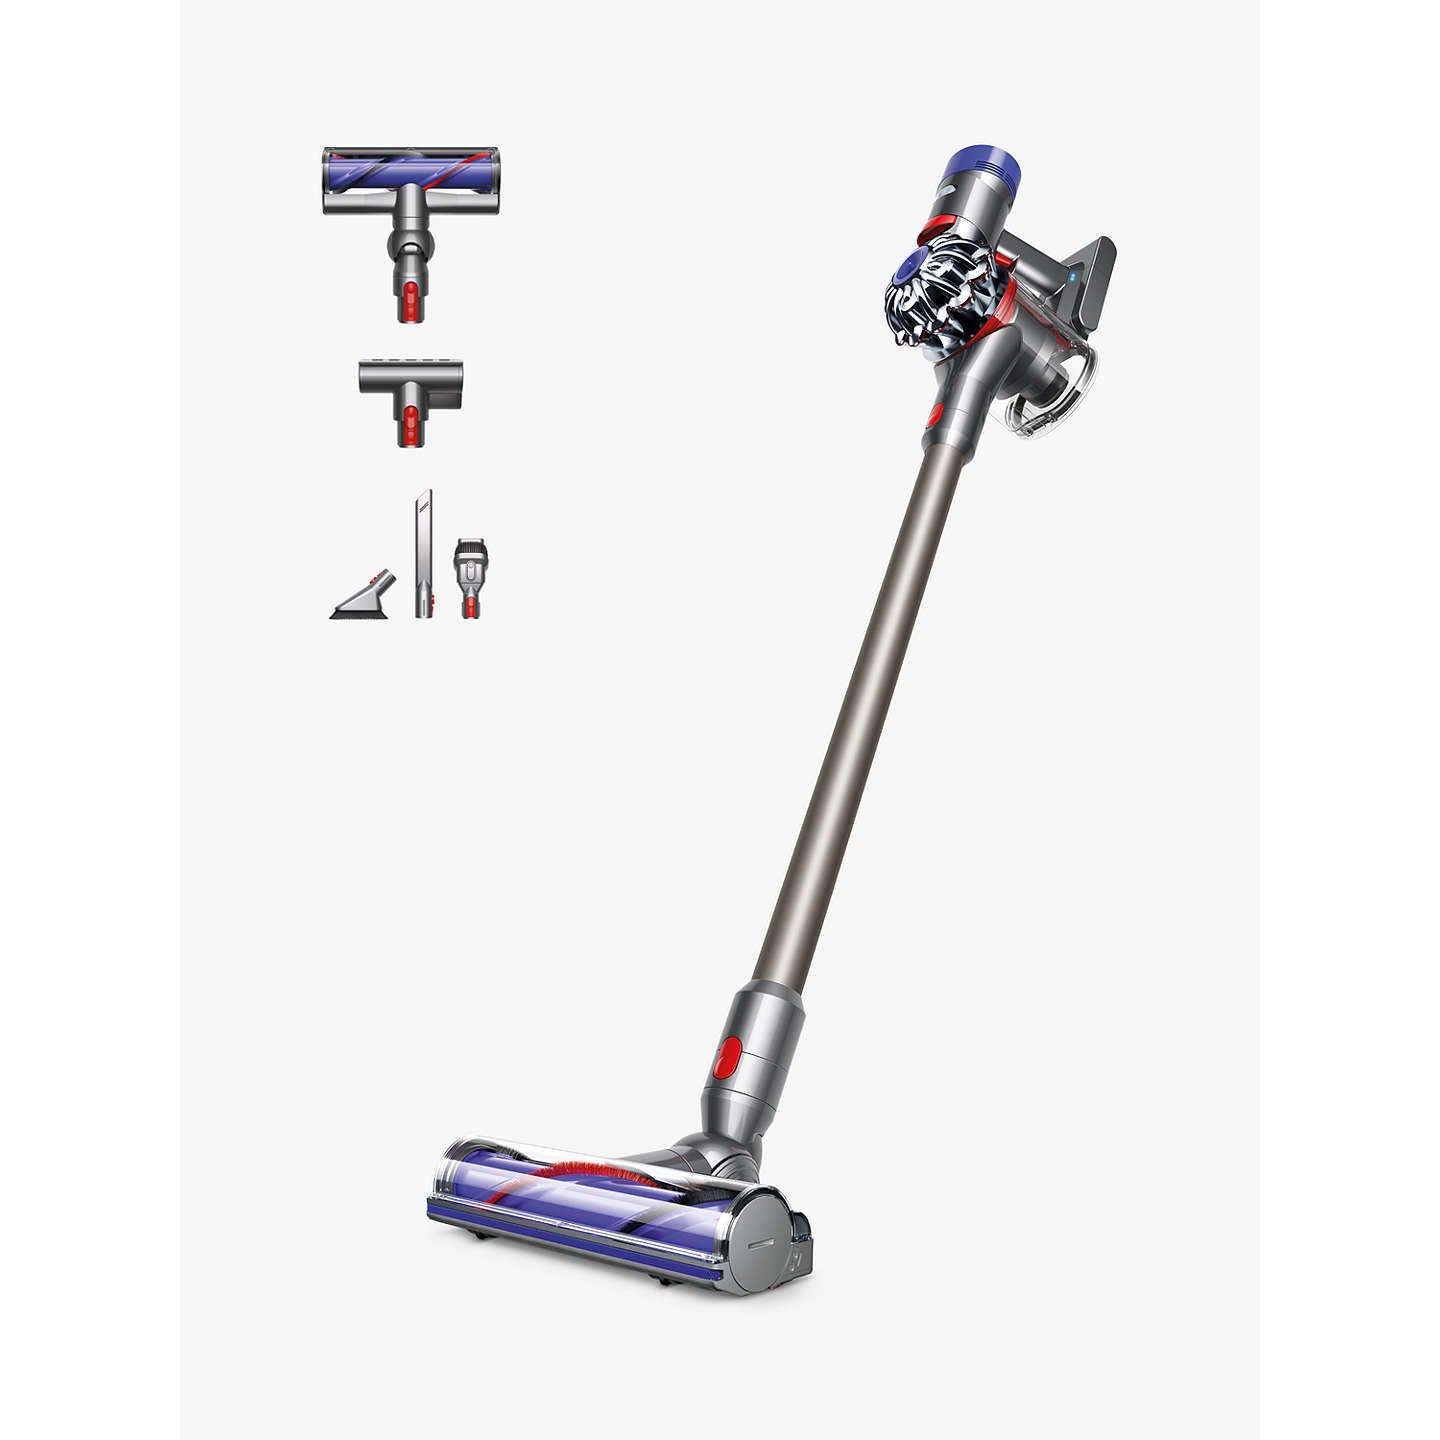 BuyDyson V8 Animal Cordless Vacuum Cleaner Online at johnlewis.com